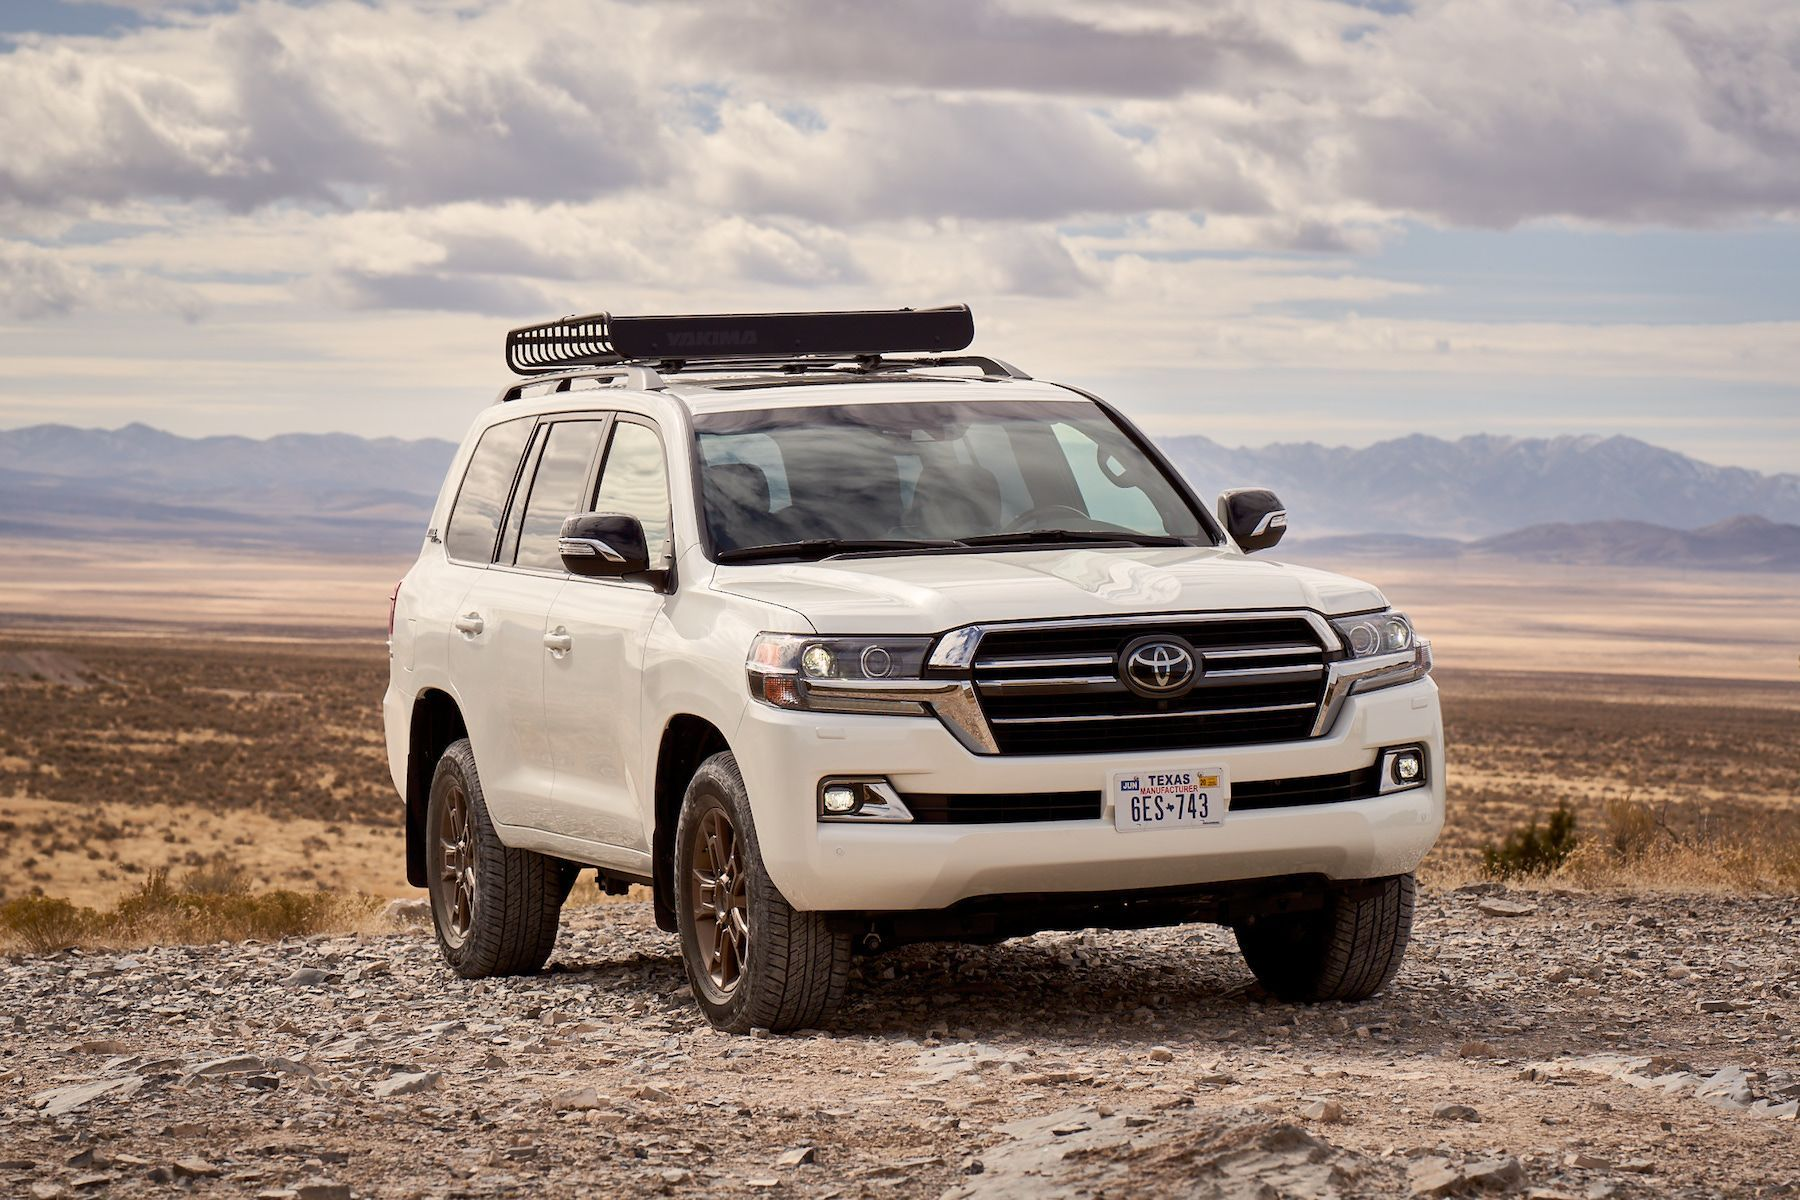 2020 Land Cruiser Price and Review